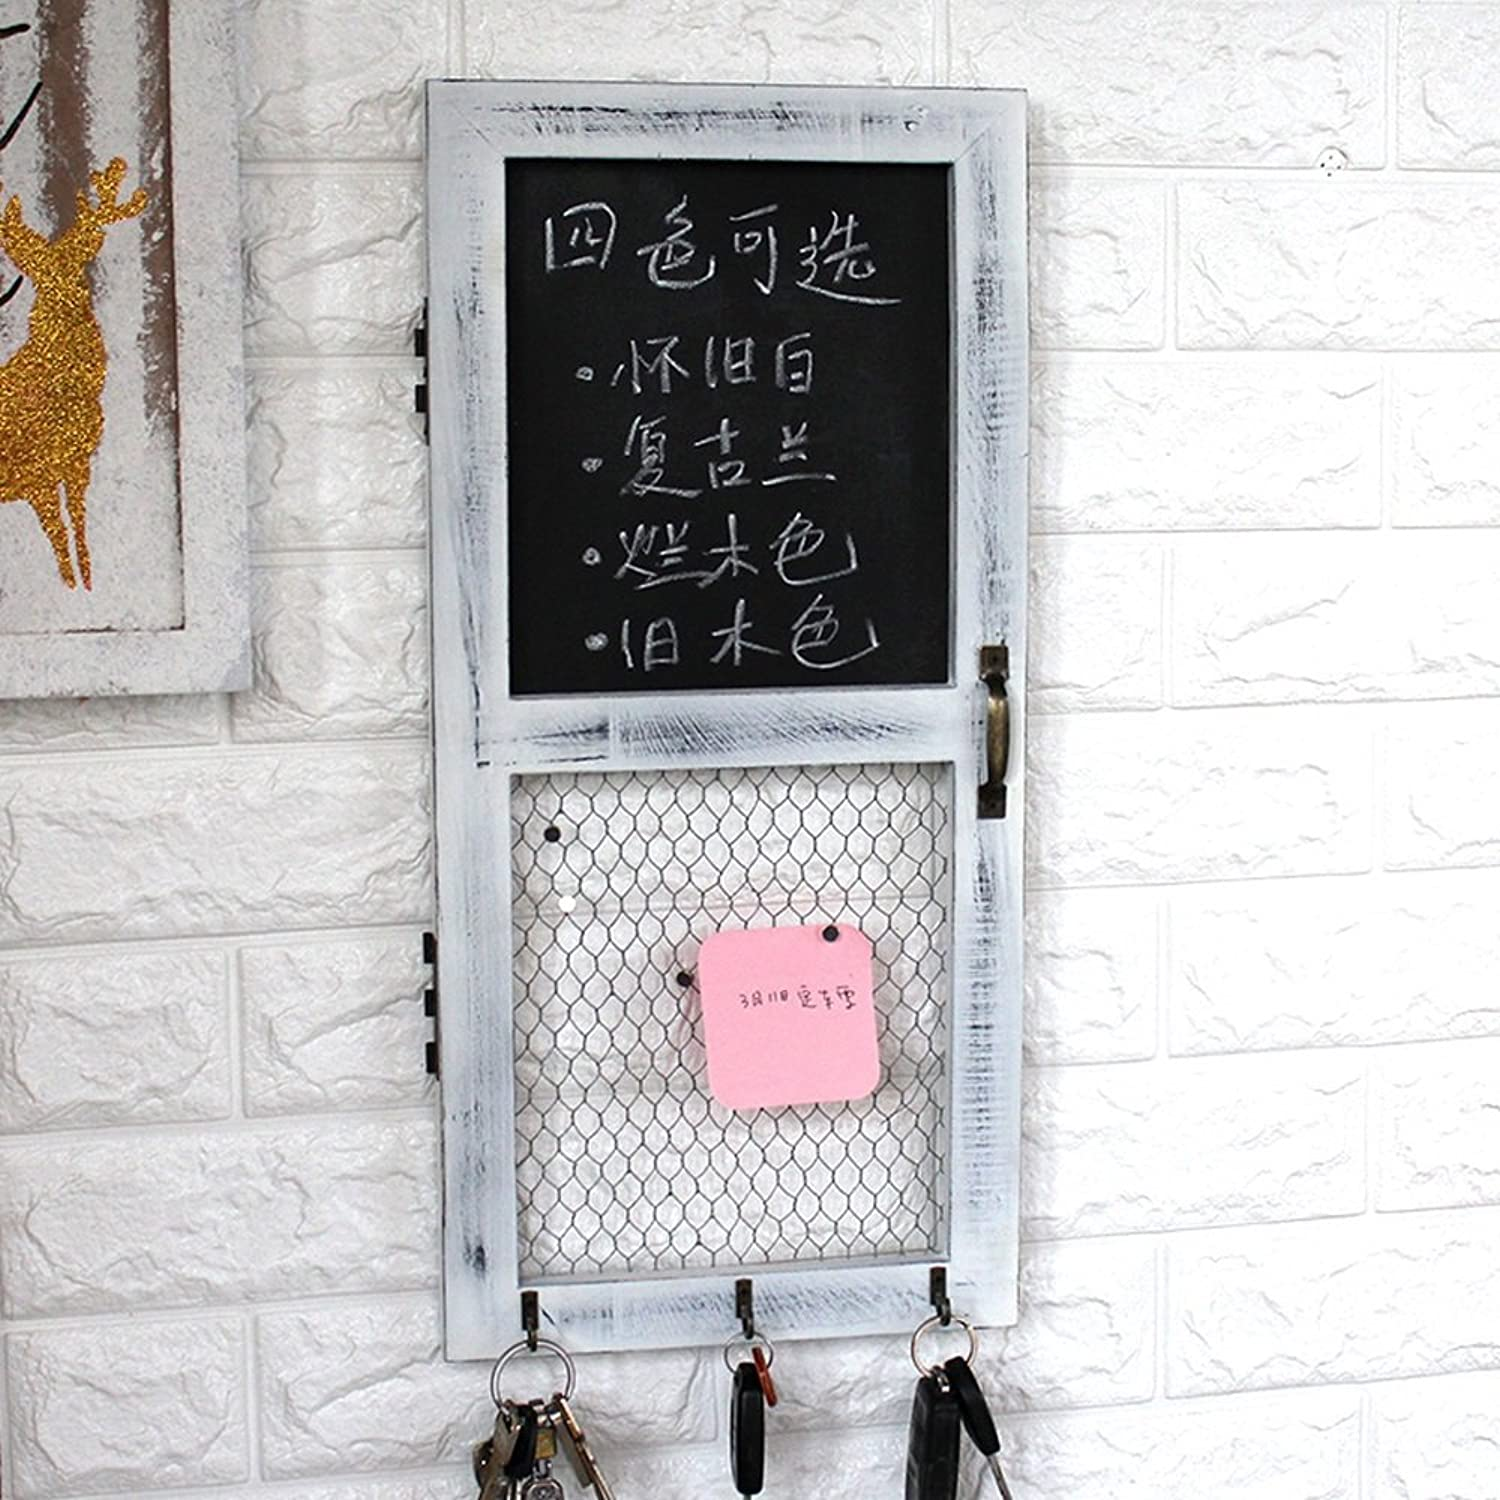 European Retro Vintage Wall-mounted Fake Windows And Doors Blackboard Sticky Notes Key Hooks Coffee Shop Bar Creative Decorations 24  1.8  51cm ( color   D )